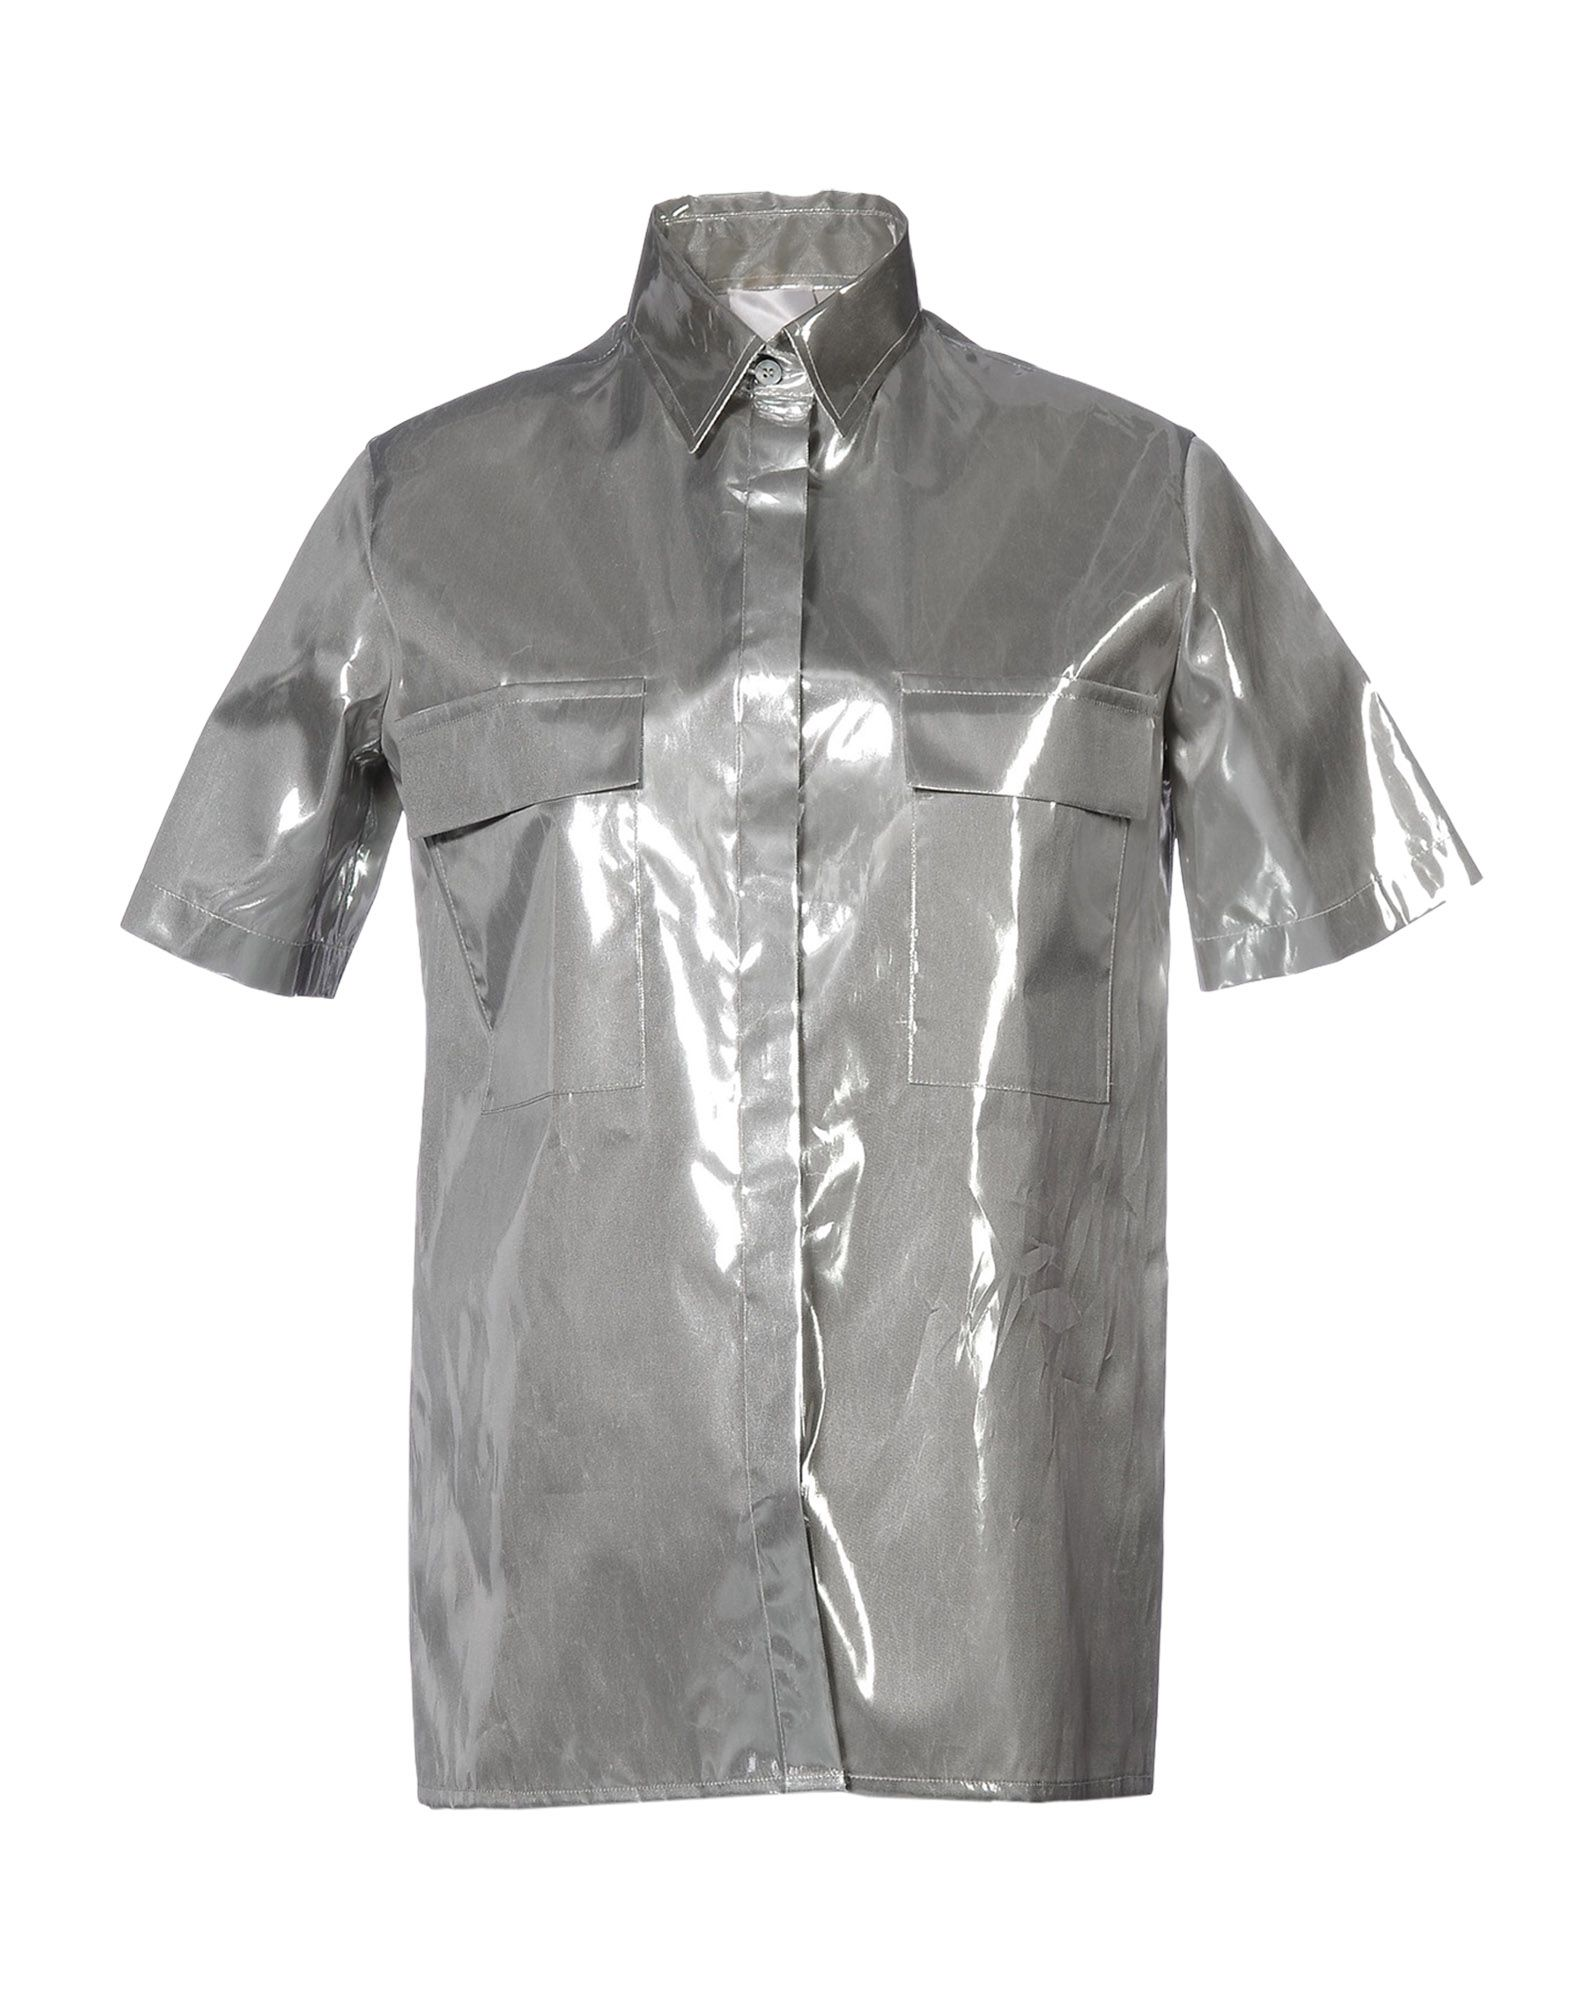 ARTHUR ARBESSER Solid Color Shirts & Blouses in Silver